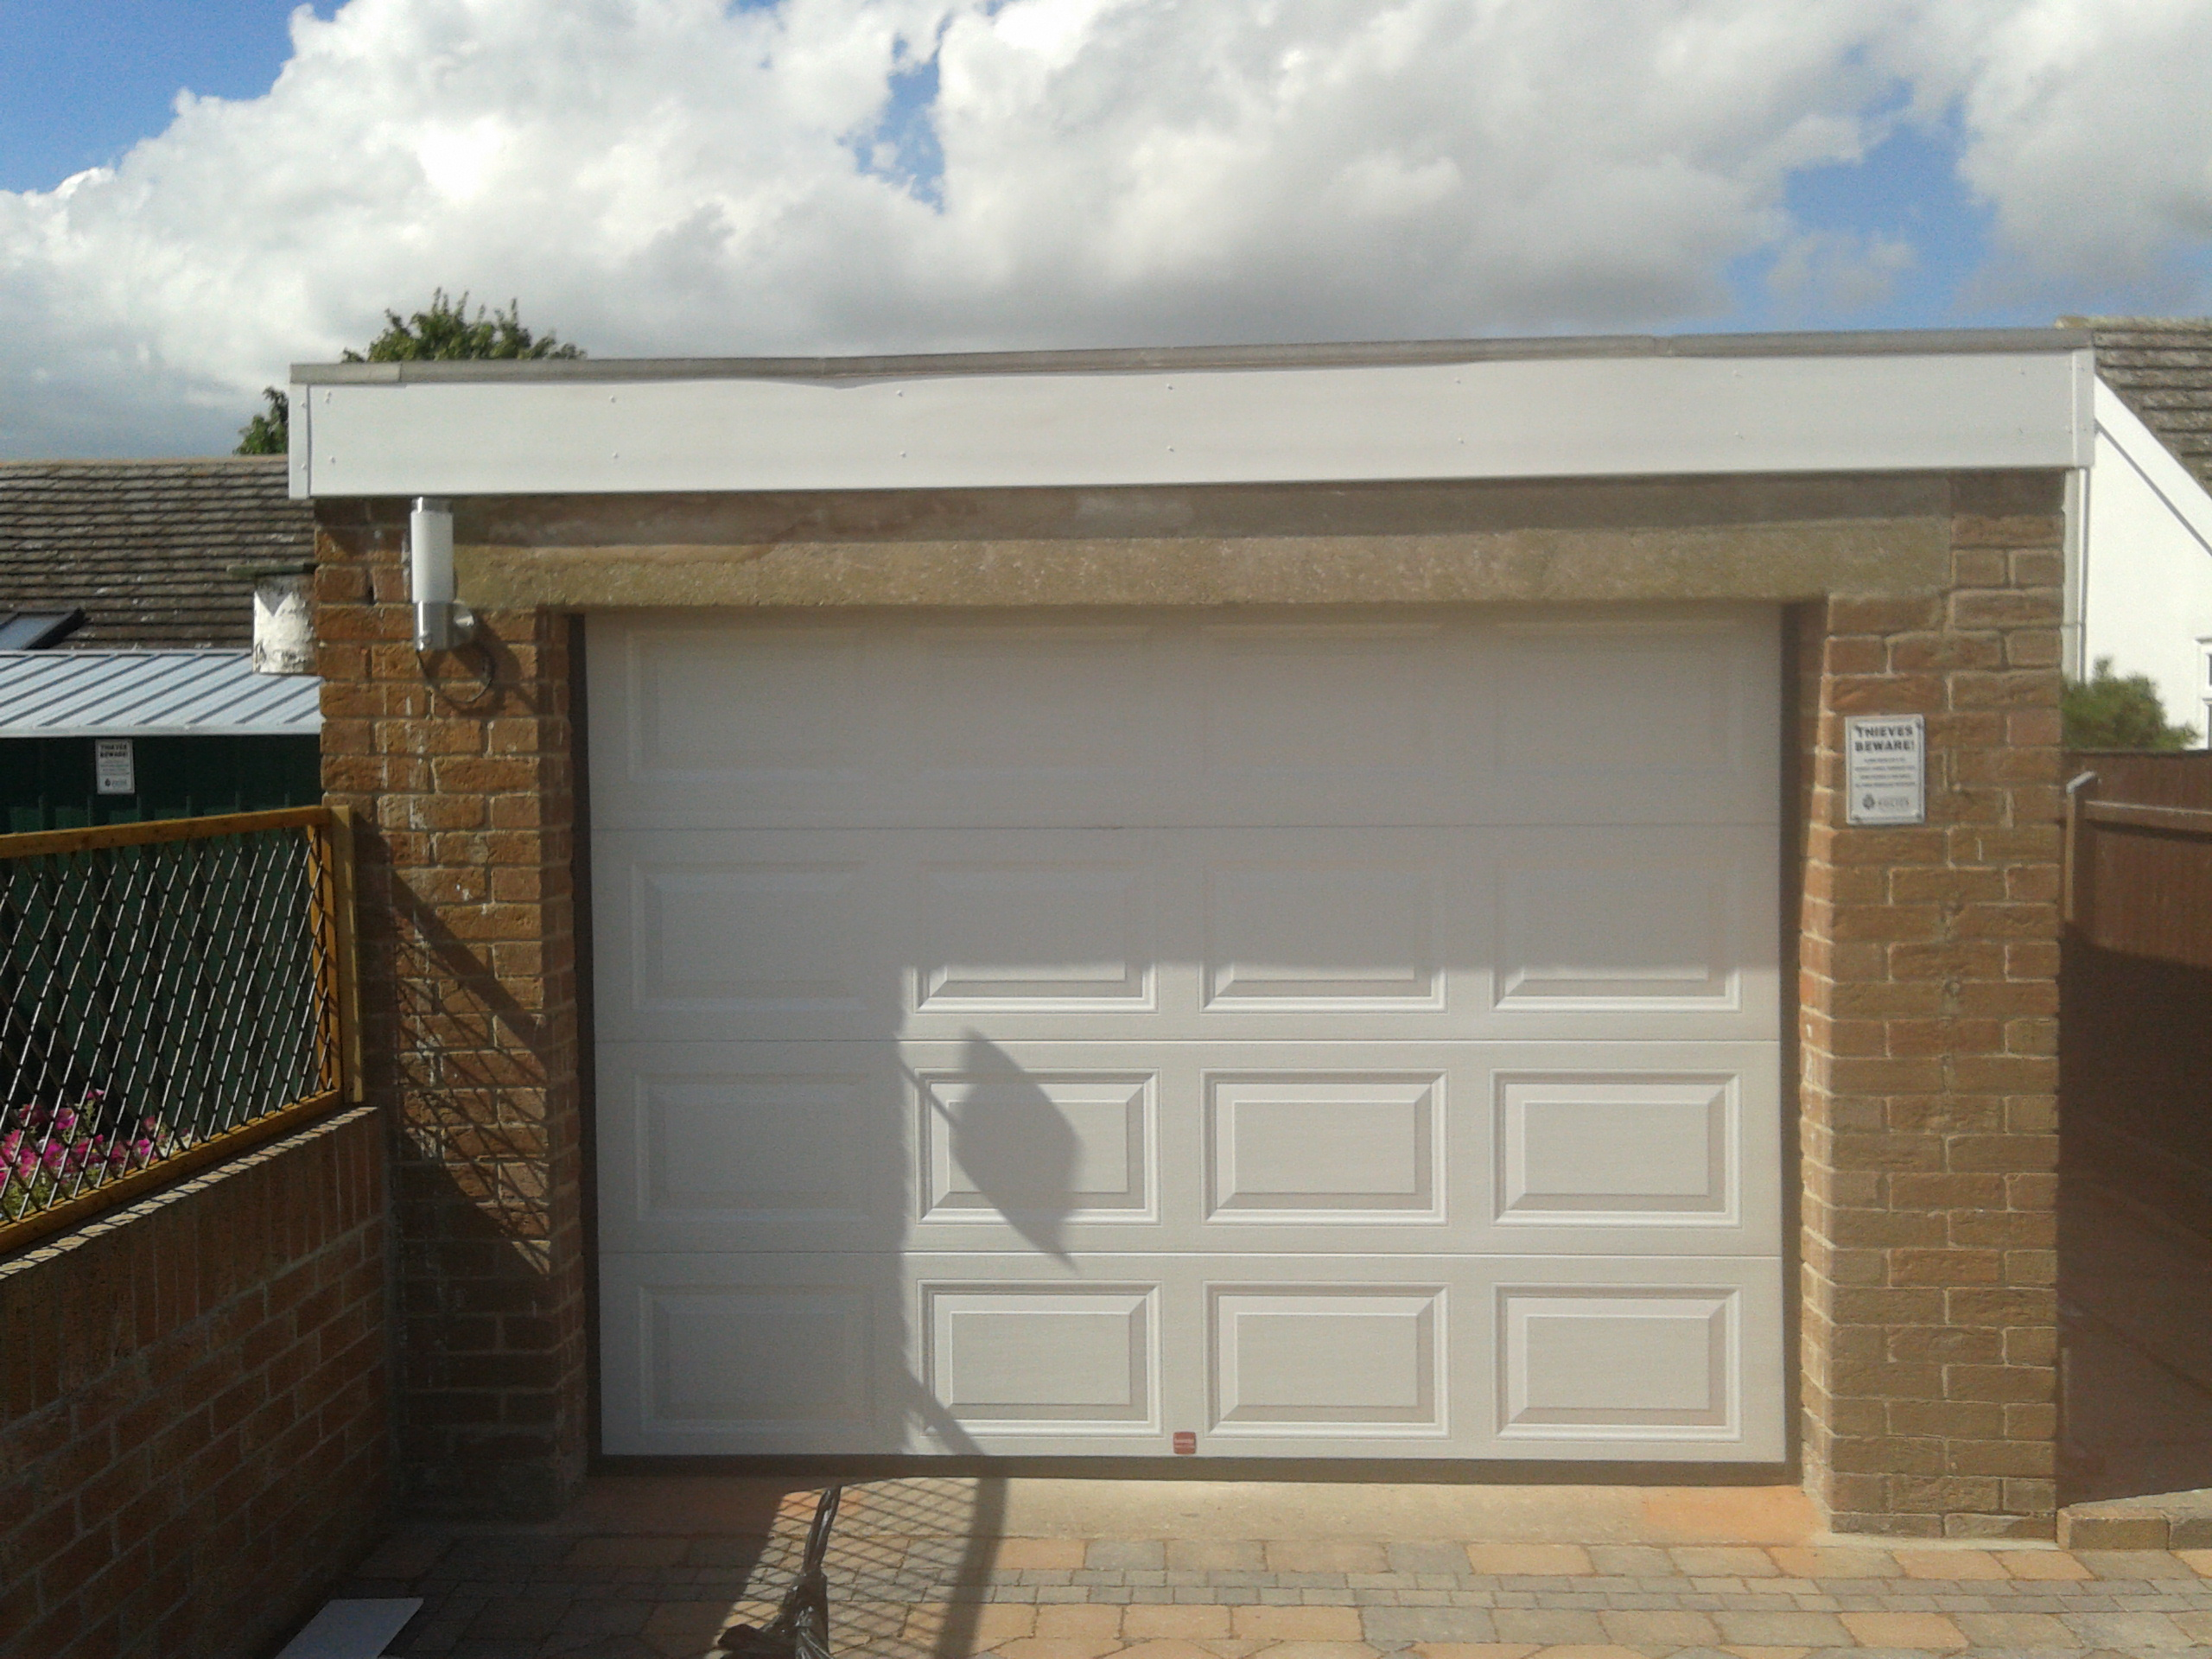 Sectional garage door - Automatic Sectional Garage Door Whatton Open Automatic Sectional Garage Door Whatton